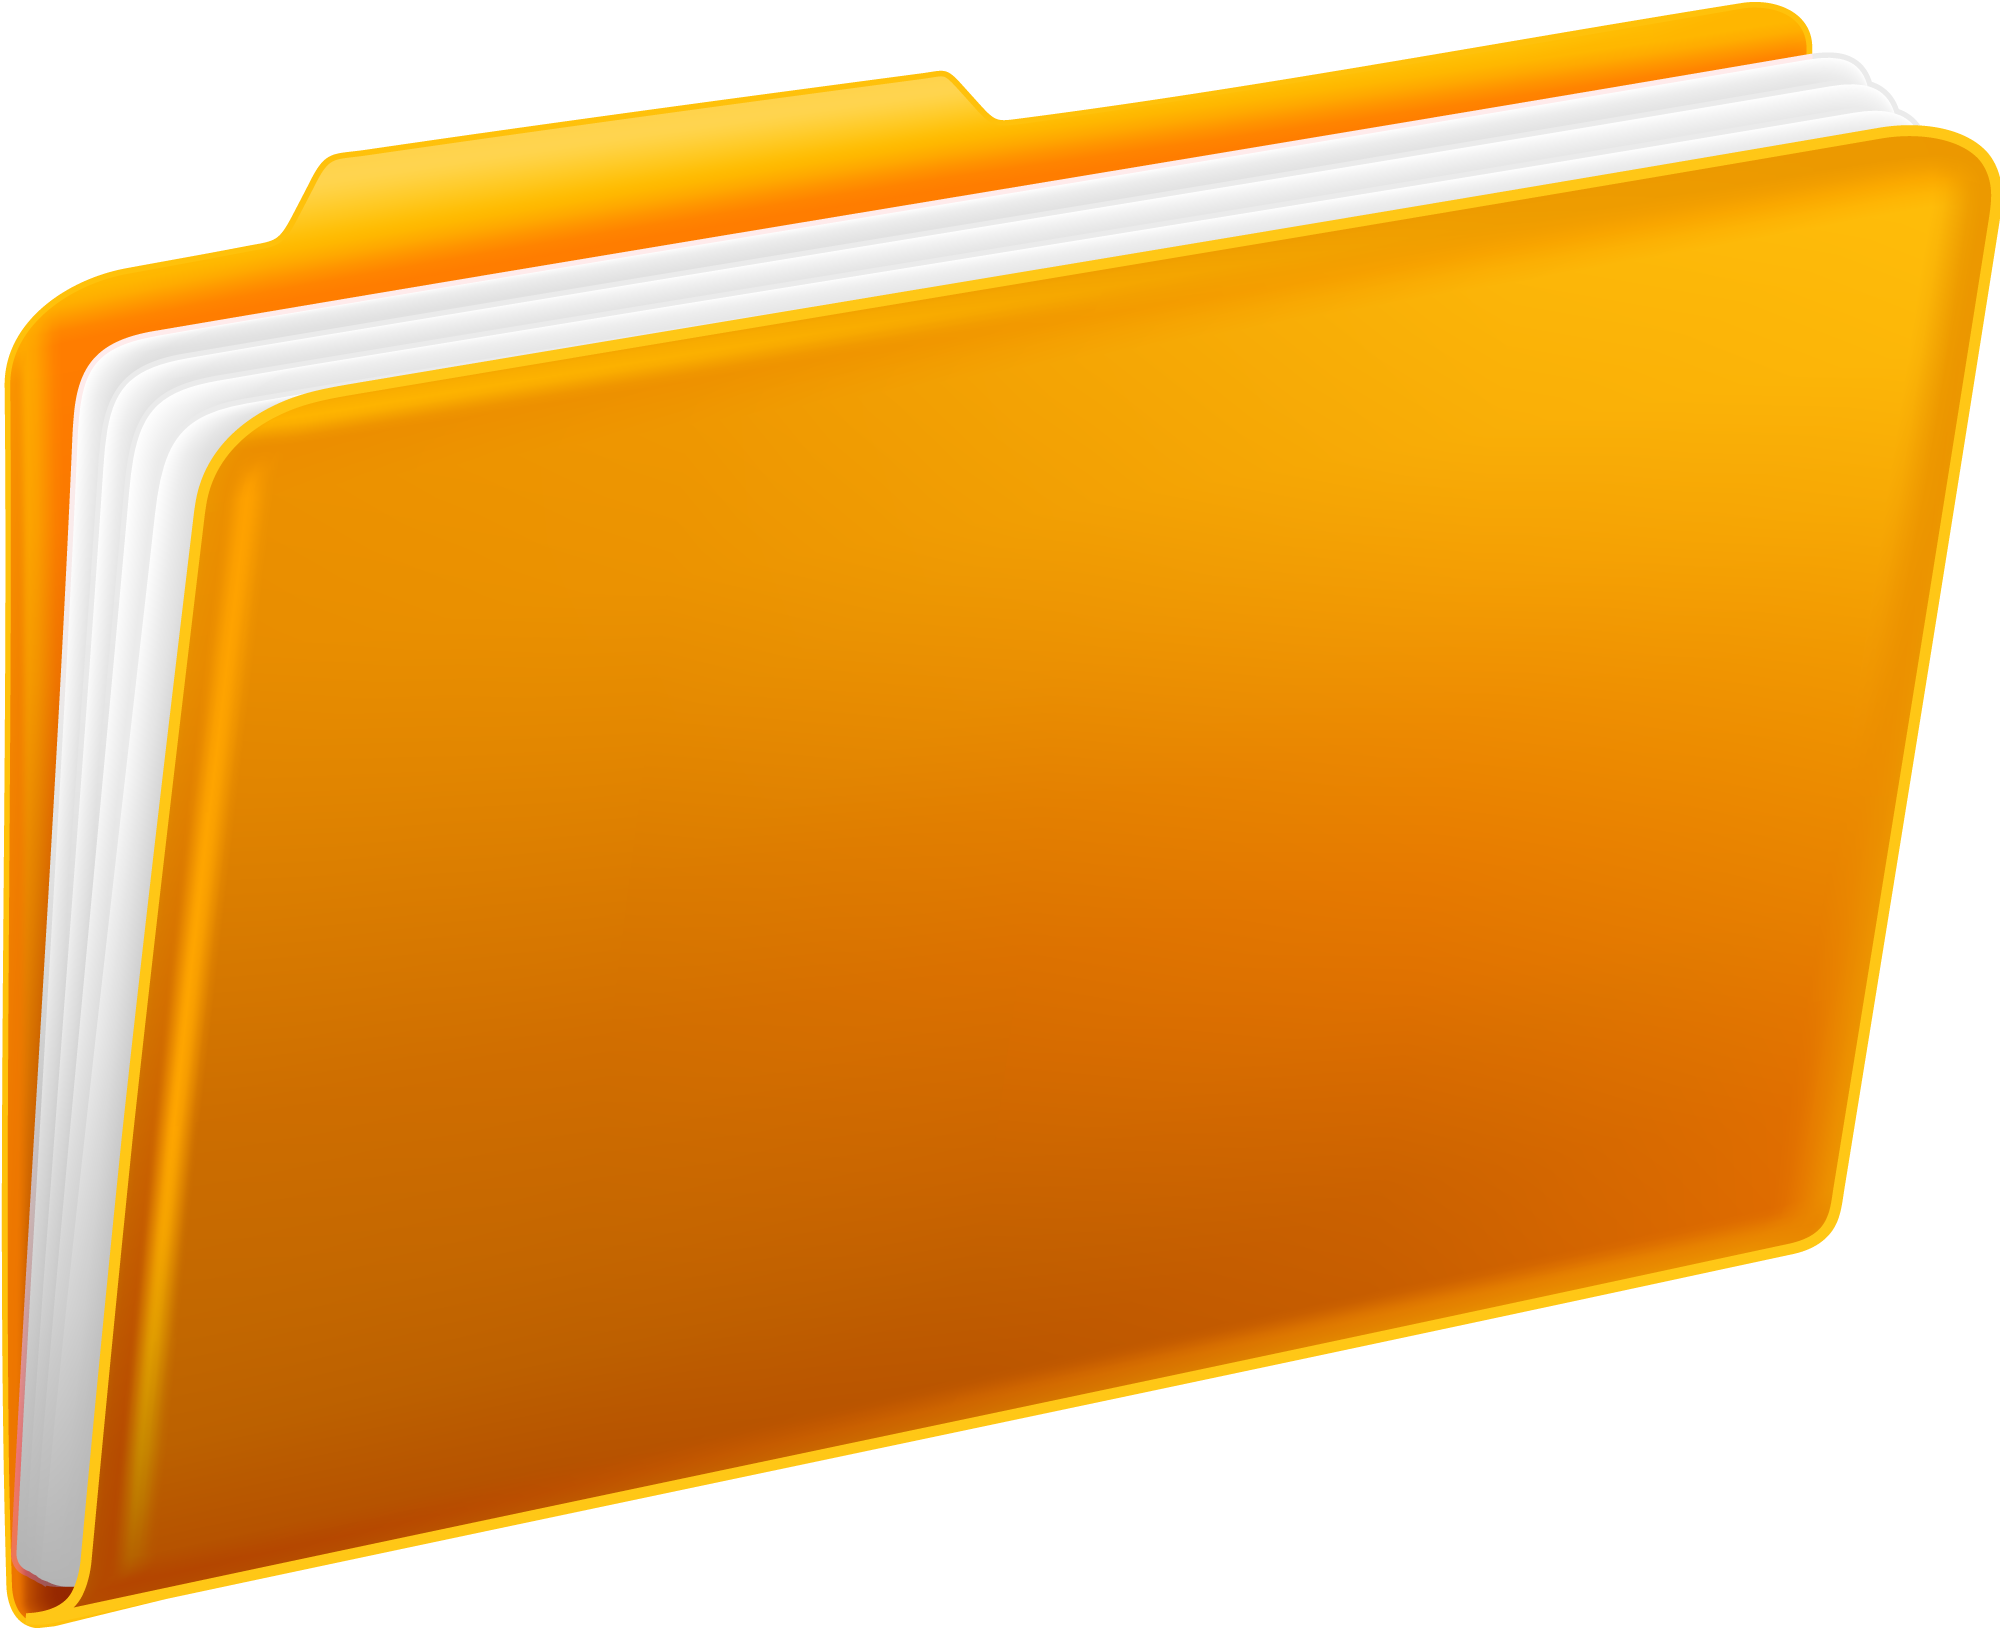 Yellow Folders PNG Image